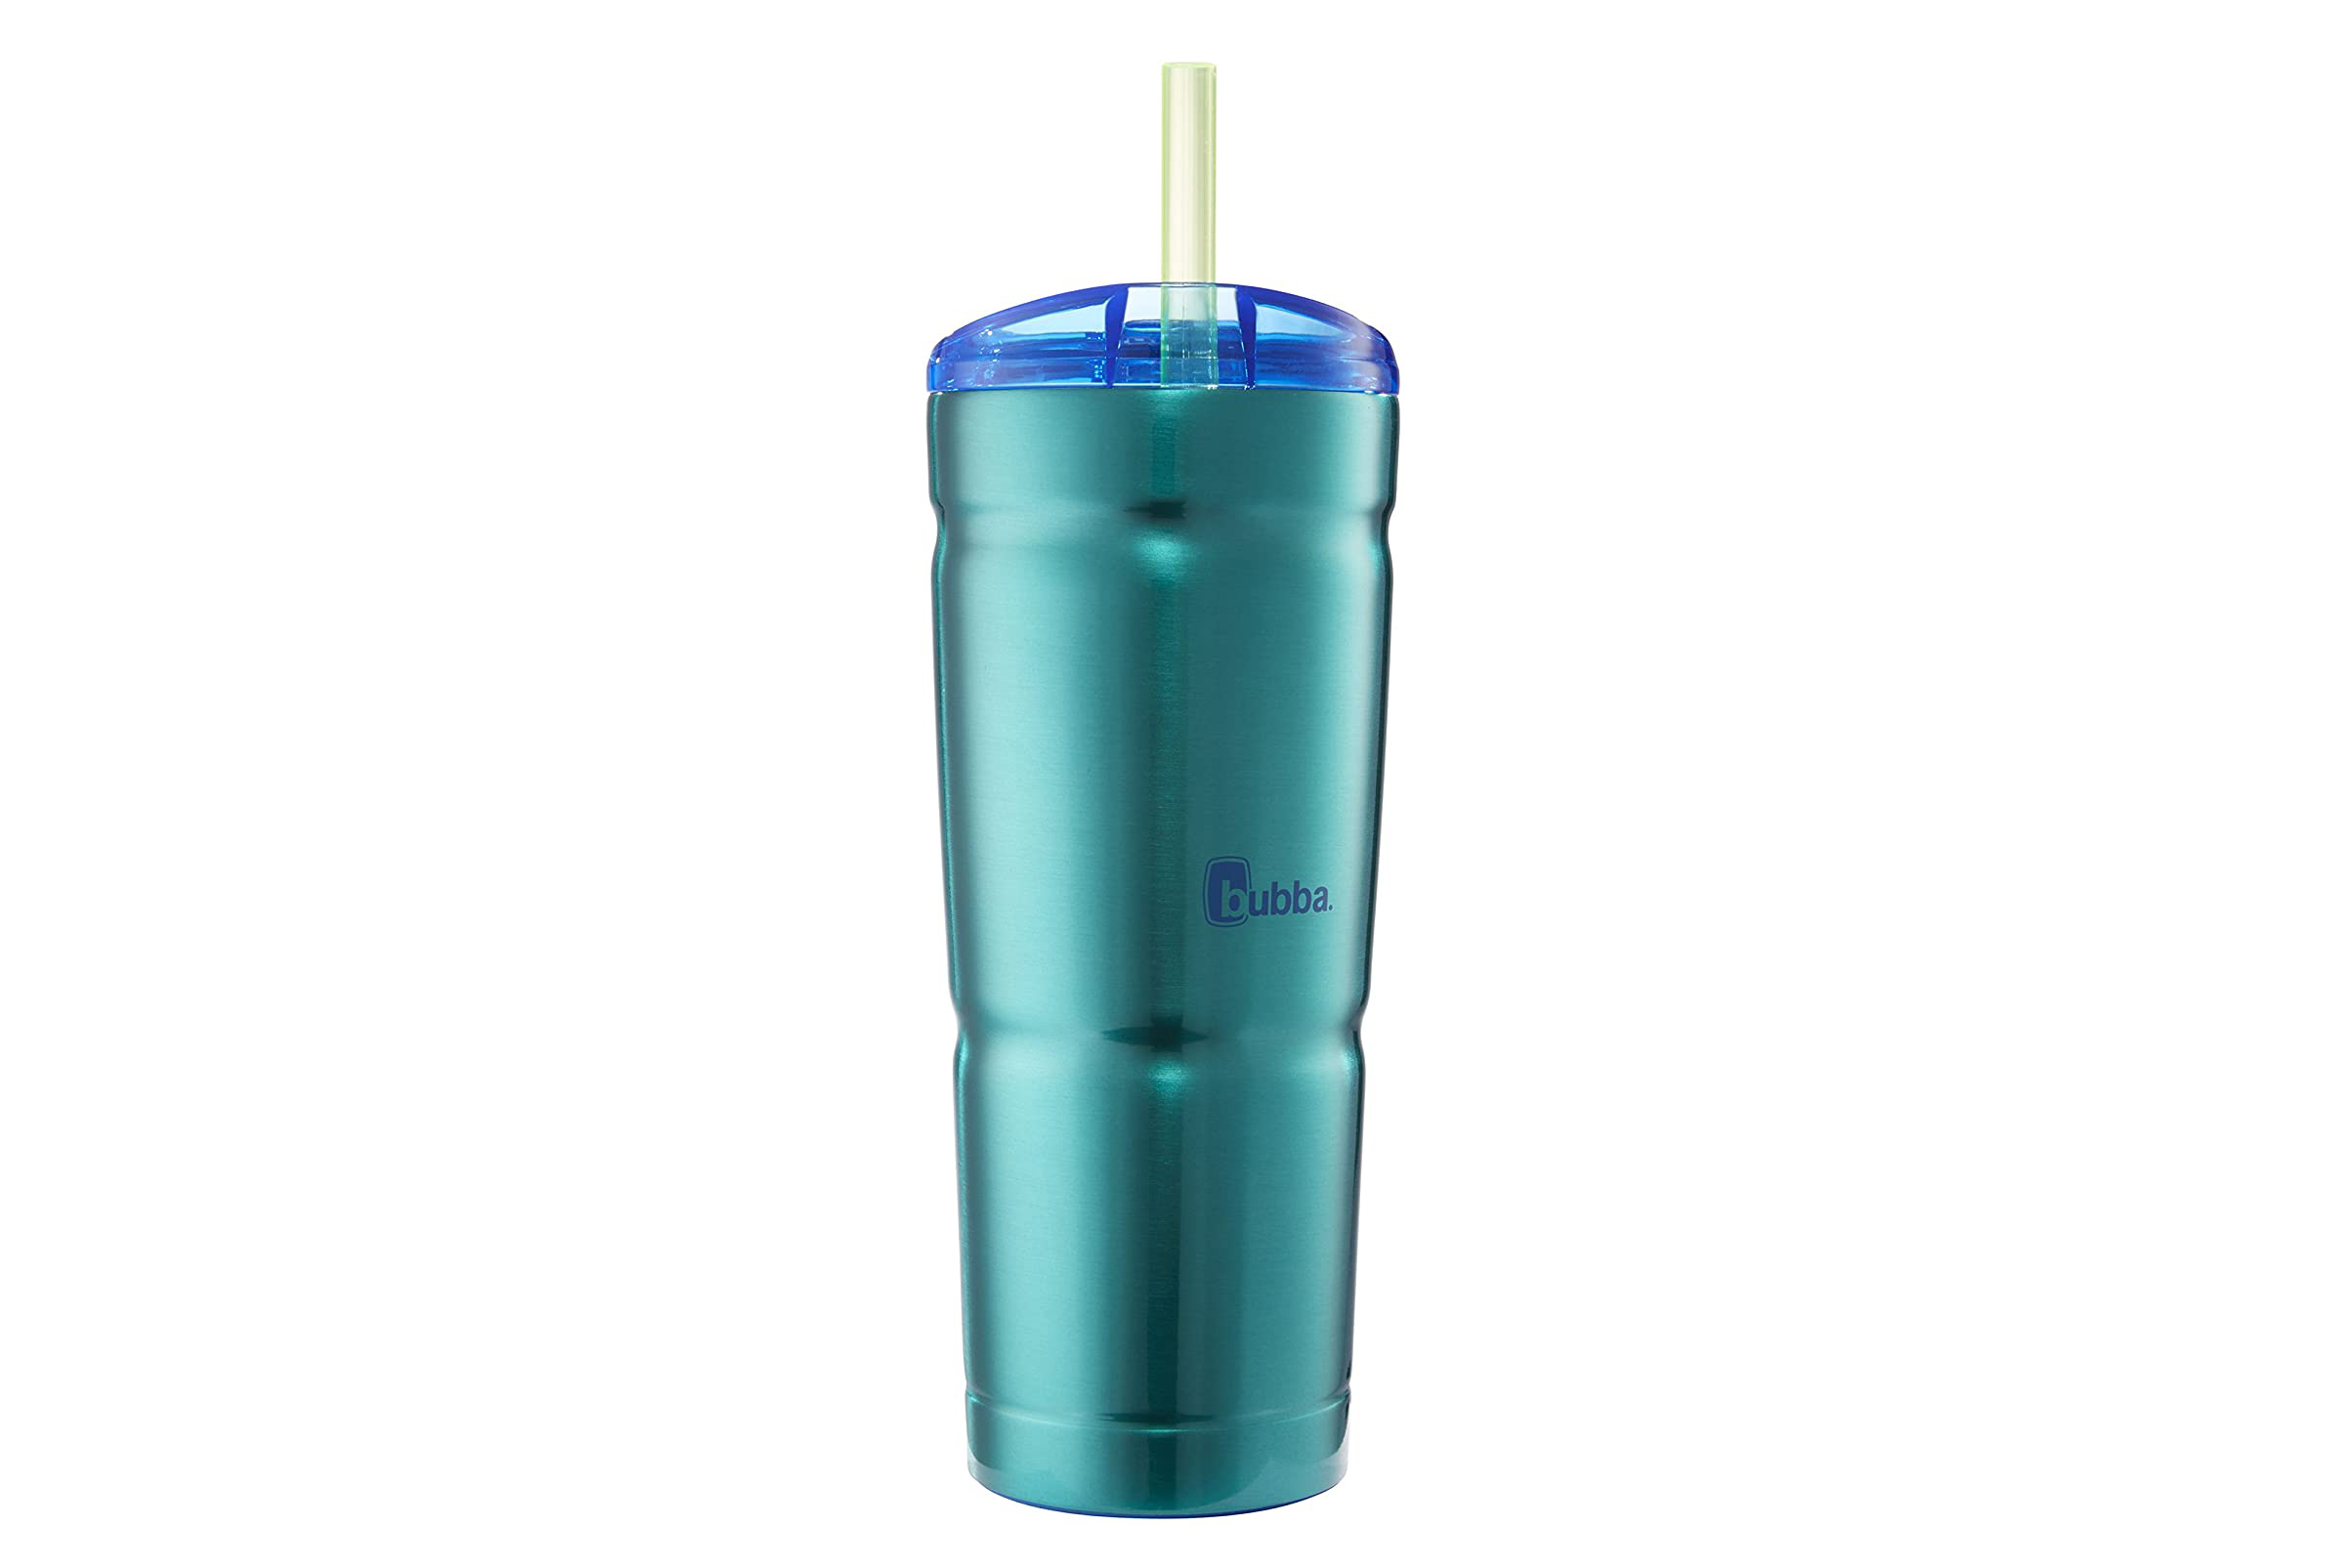 bubba Envy S Vacuum-Insulated Stainless Steel Tumbler with Straw on a white background